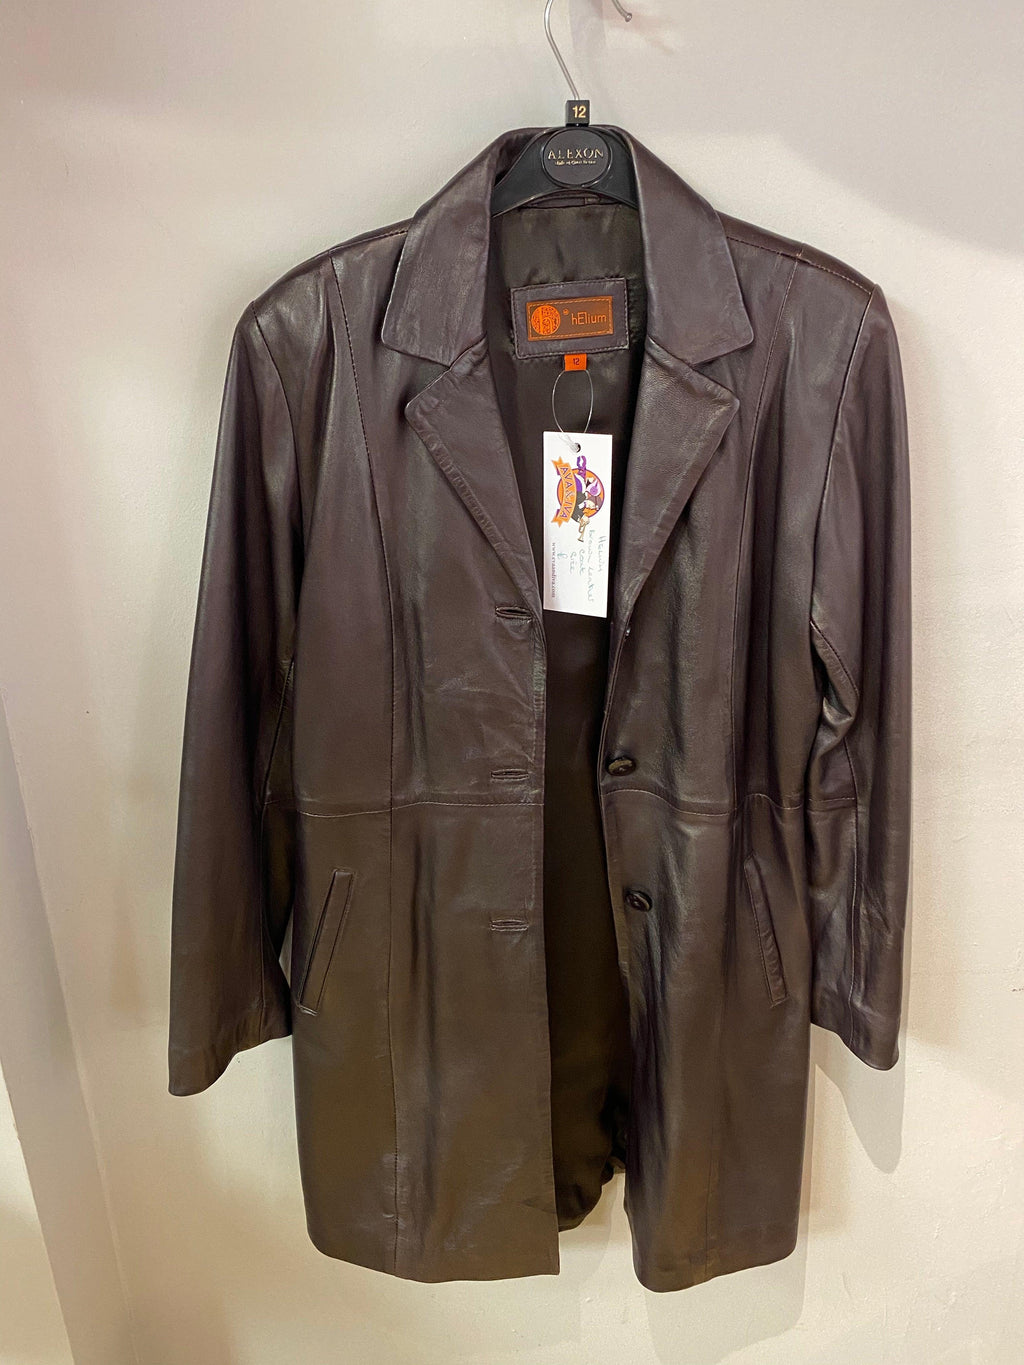 hElium Soft leather Coat Brown Fully Lined with Pockets UK Size 12